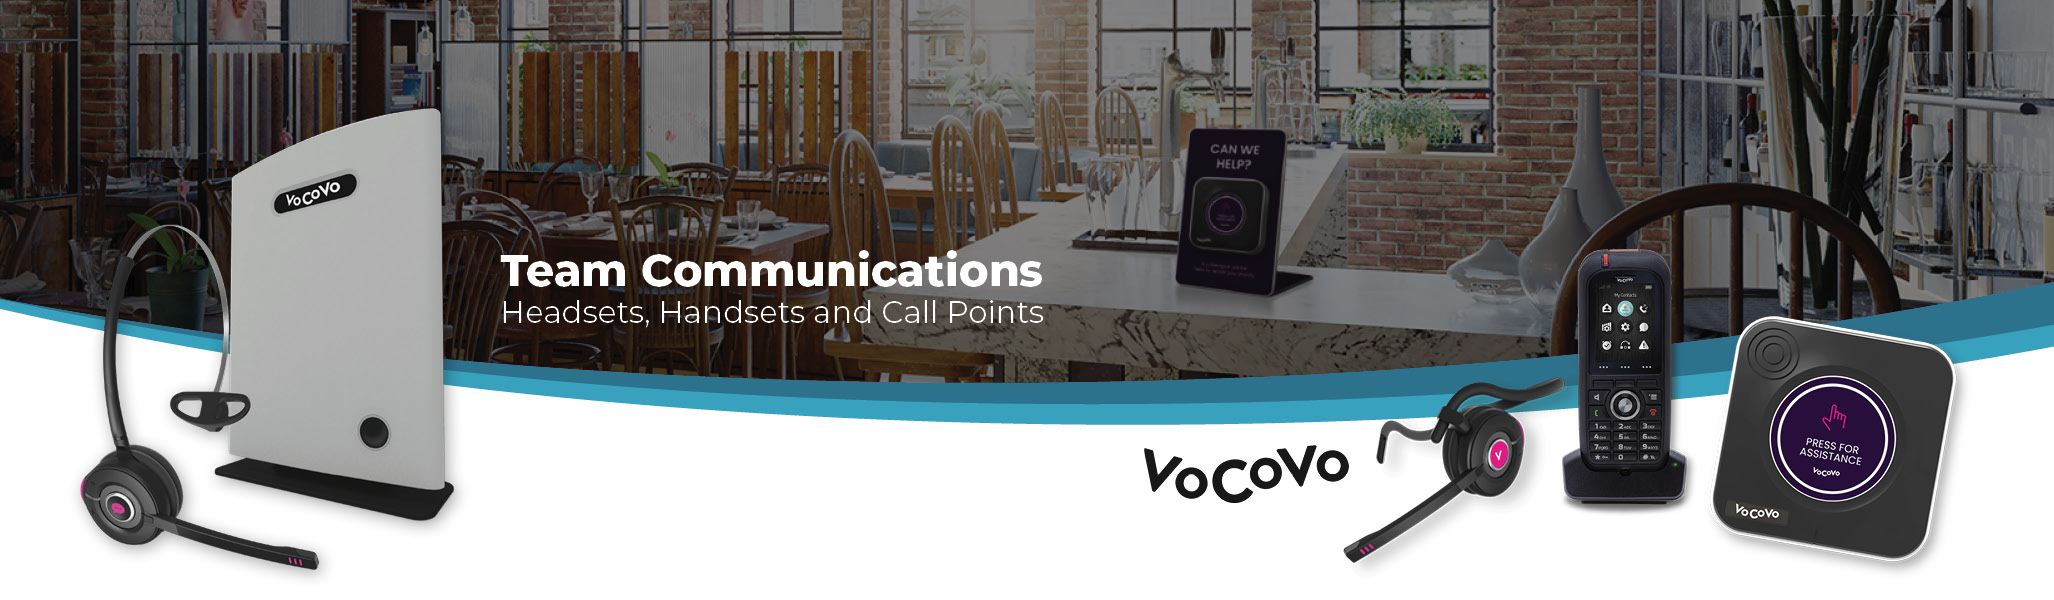 VoCoVo-Team-Communications